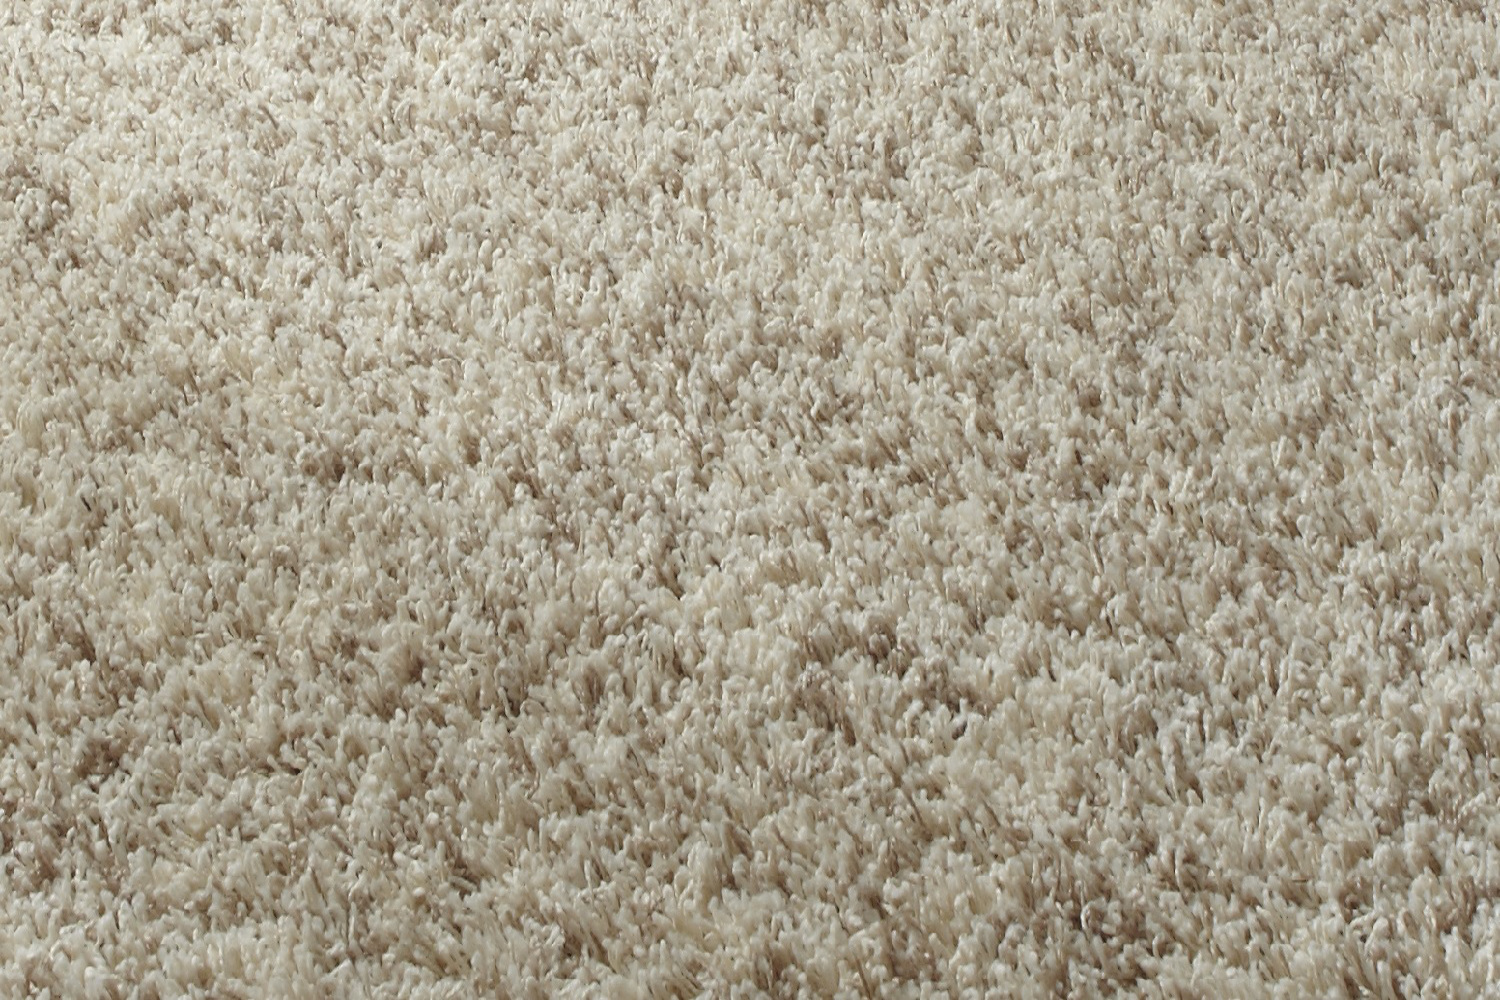 Wonderful Item Description. These Large, Stylish Vista Shaggy Pile Floor Rugs ...